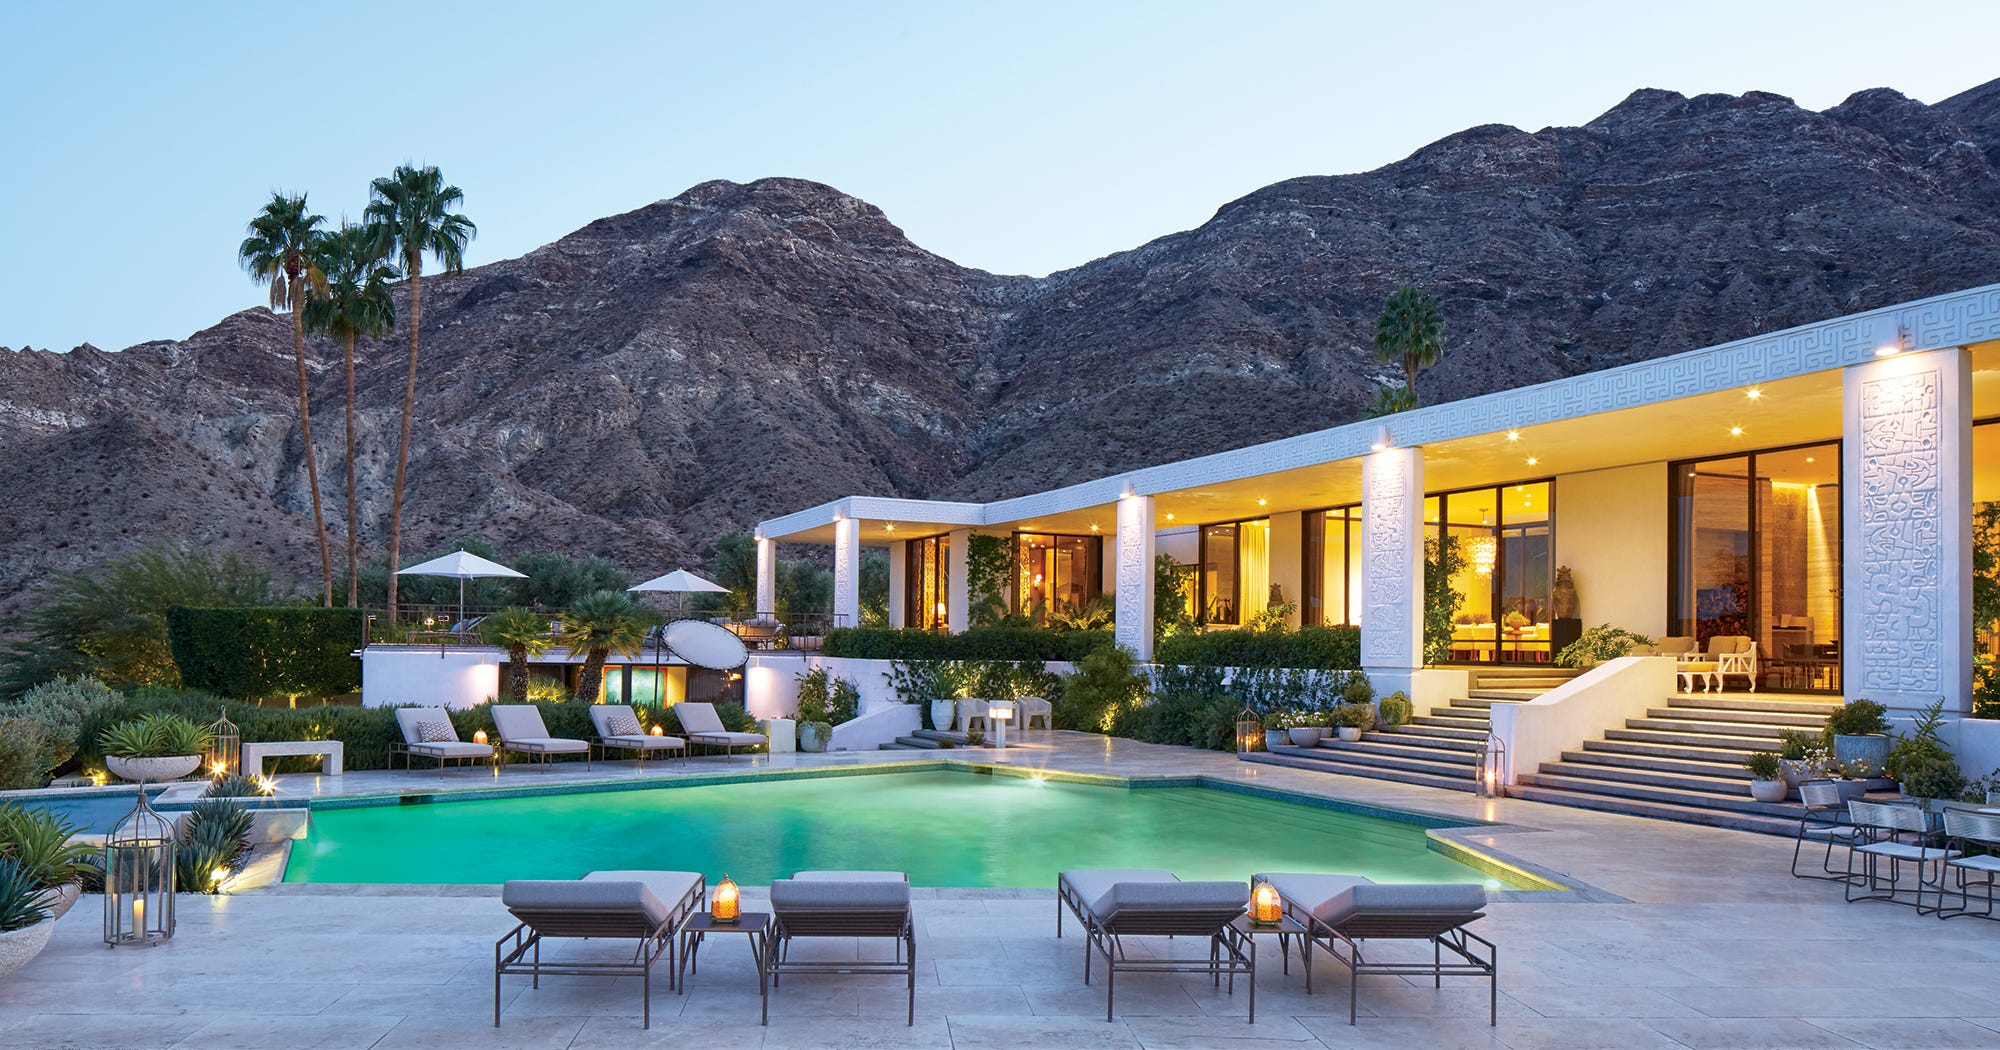 Obama Palm Springs Vacation House